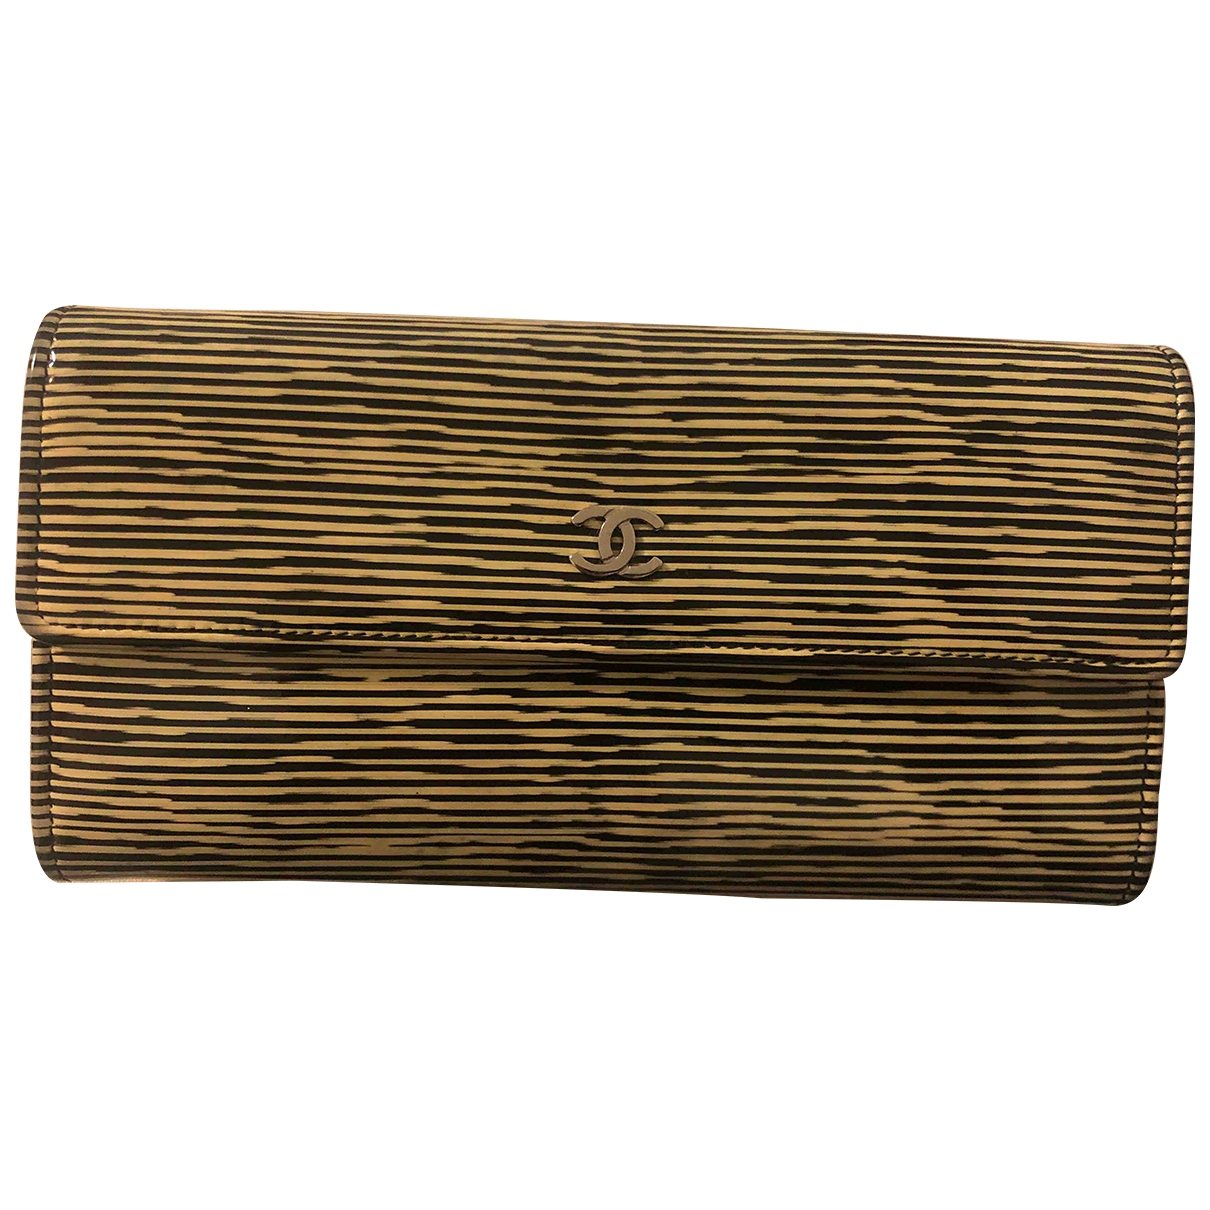 Chanel \N Gold Patent leather wallet for Women \N